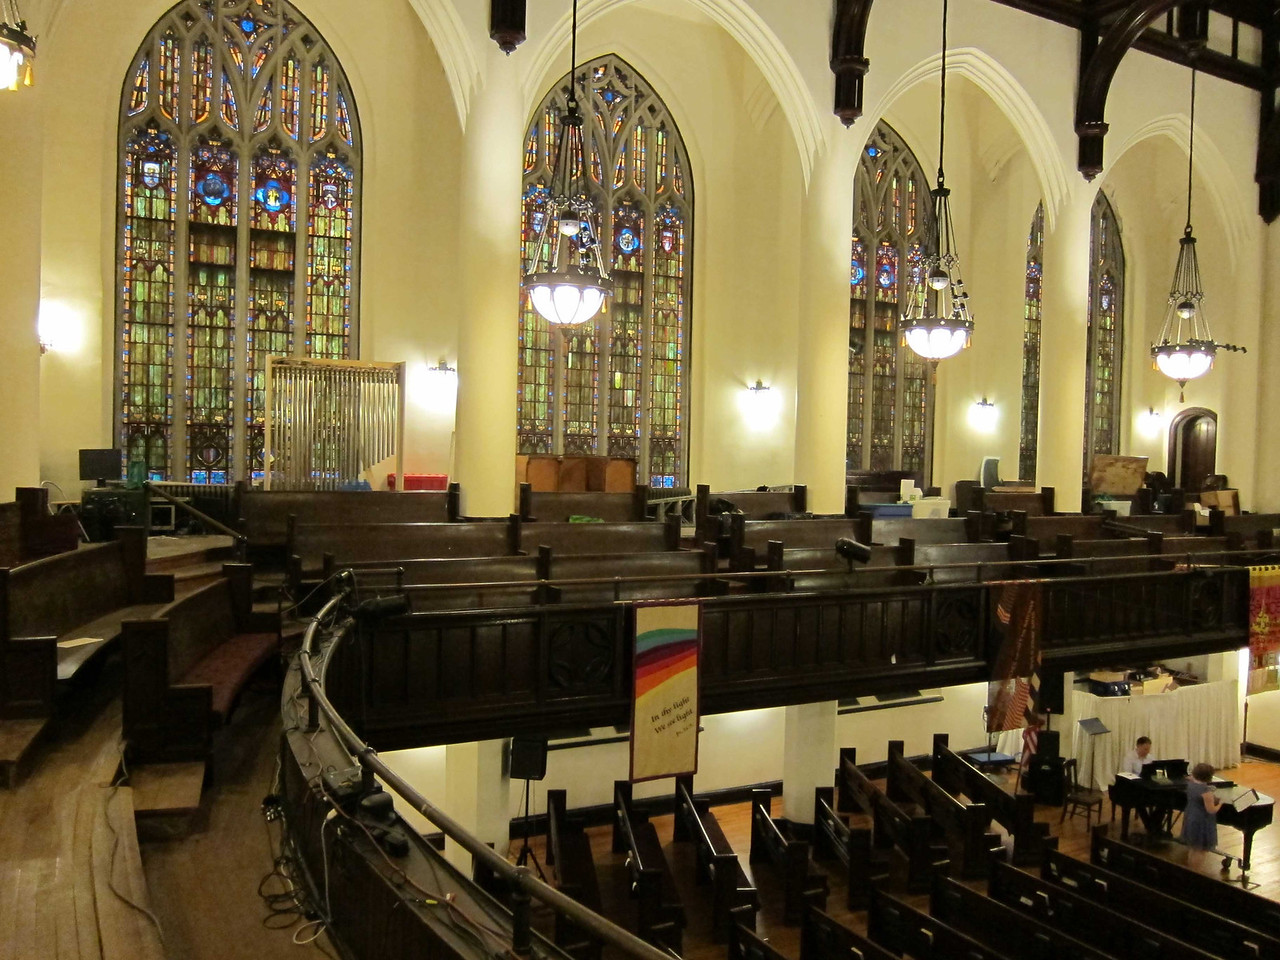 Broadway Presbyterian Church_2013-10-04_4337_balcony side seating along south wall